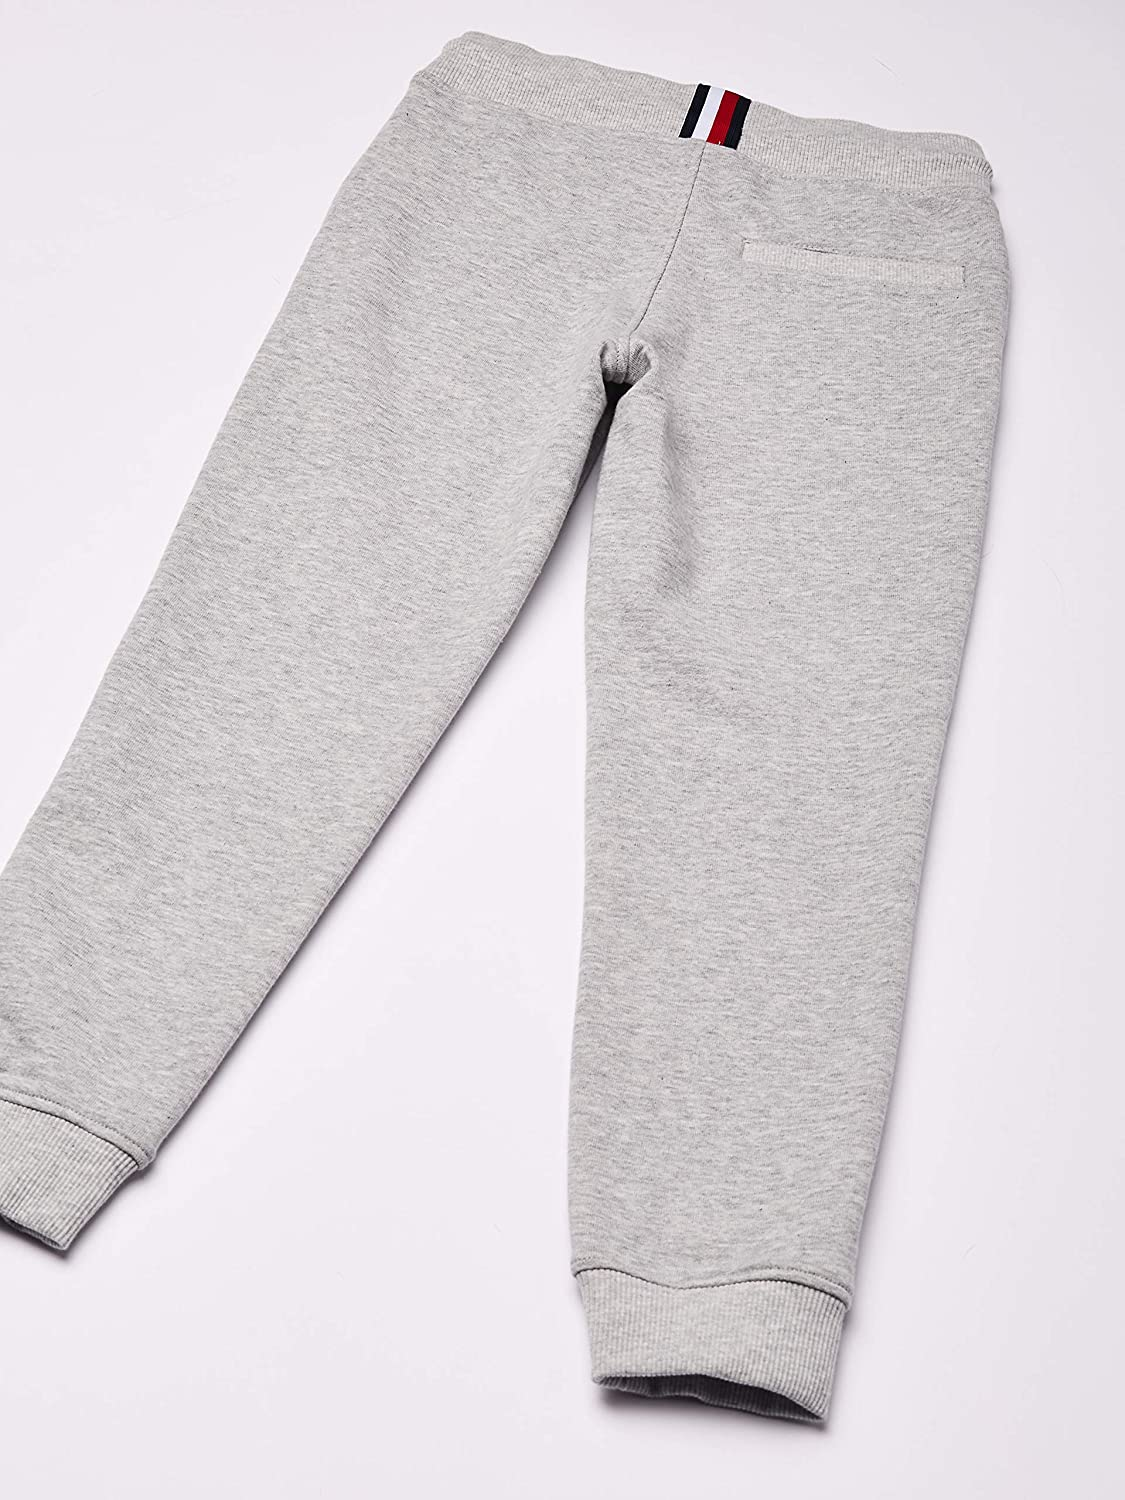 Size:3 Light Grey Heather P01 Tommy Hilfiger Boys Essential Sweatpants Trousers 3-4 Years Grey